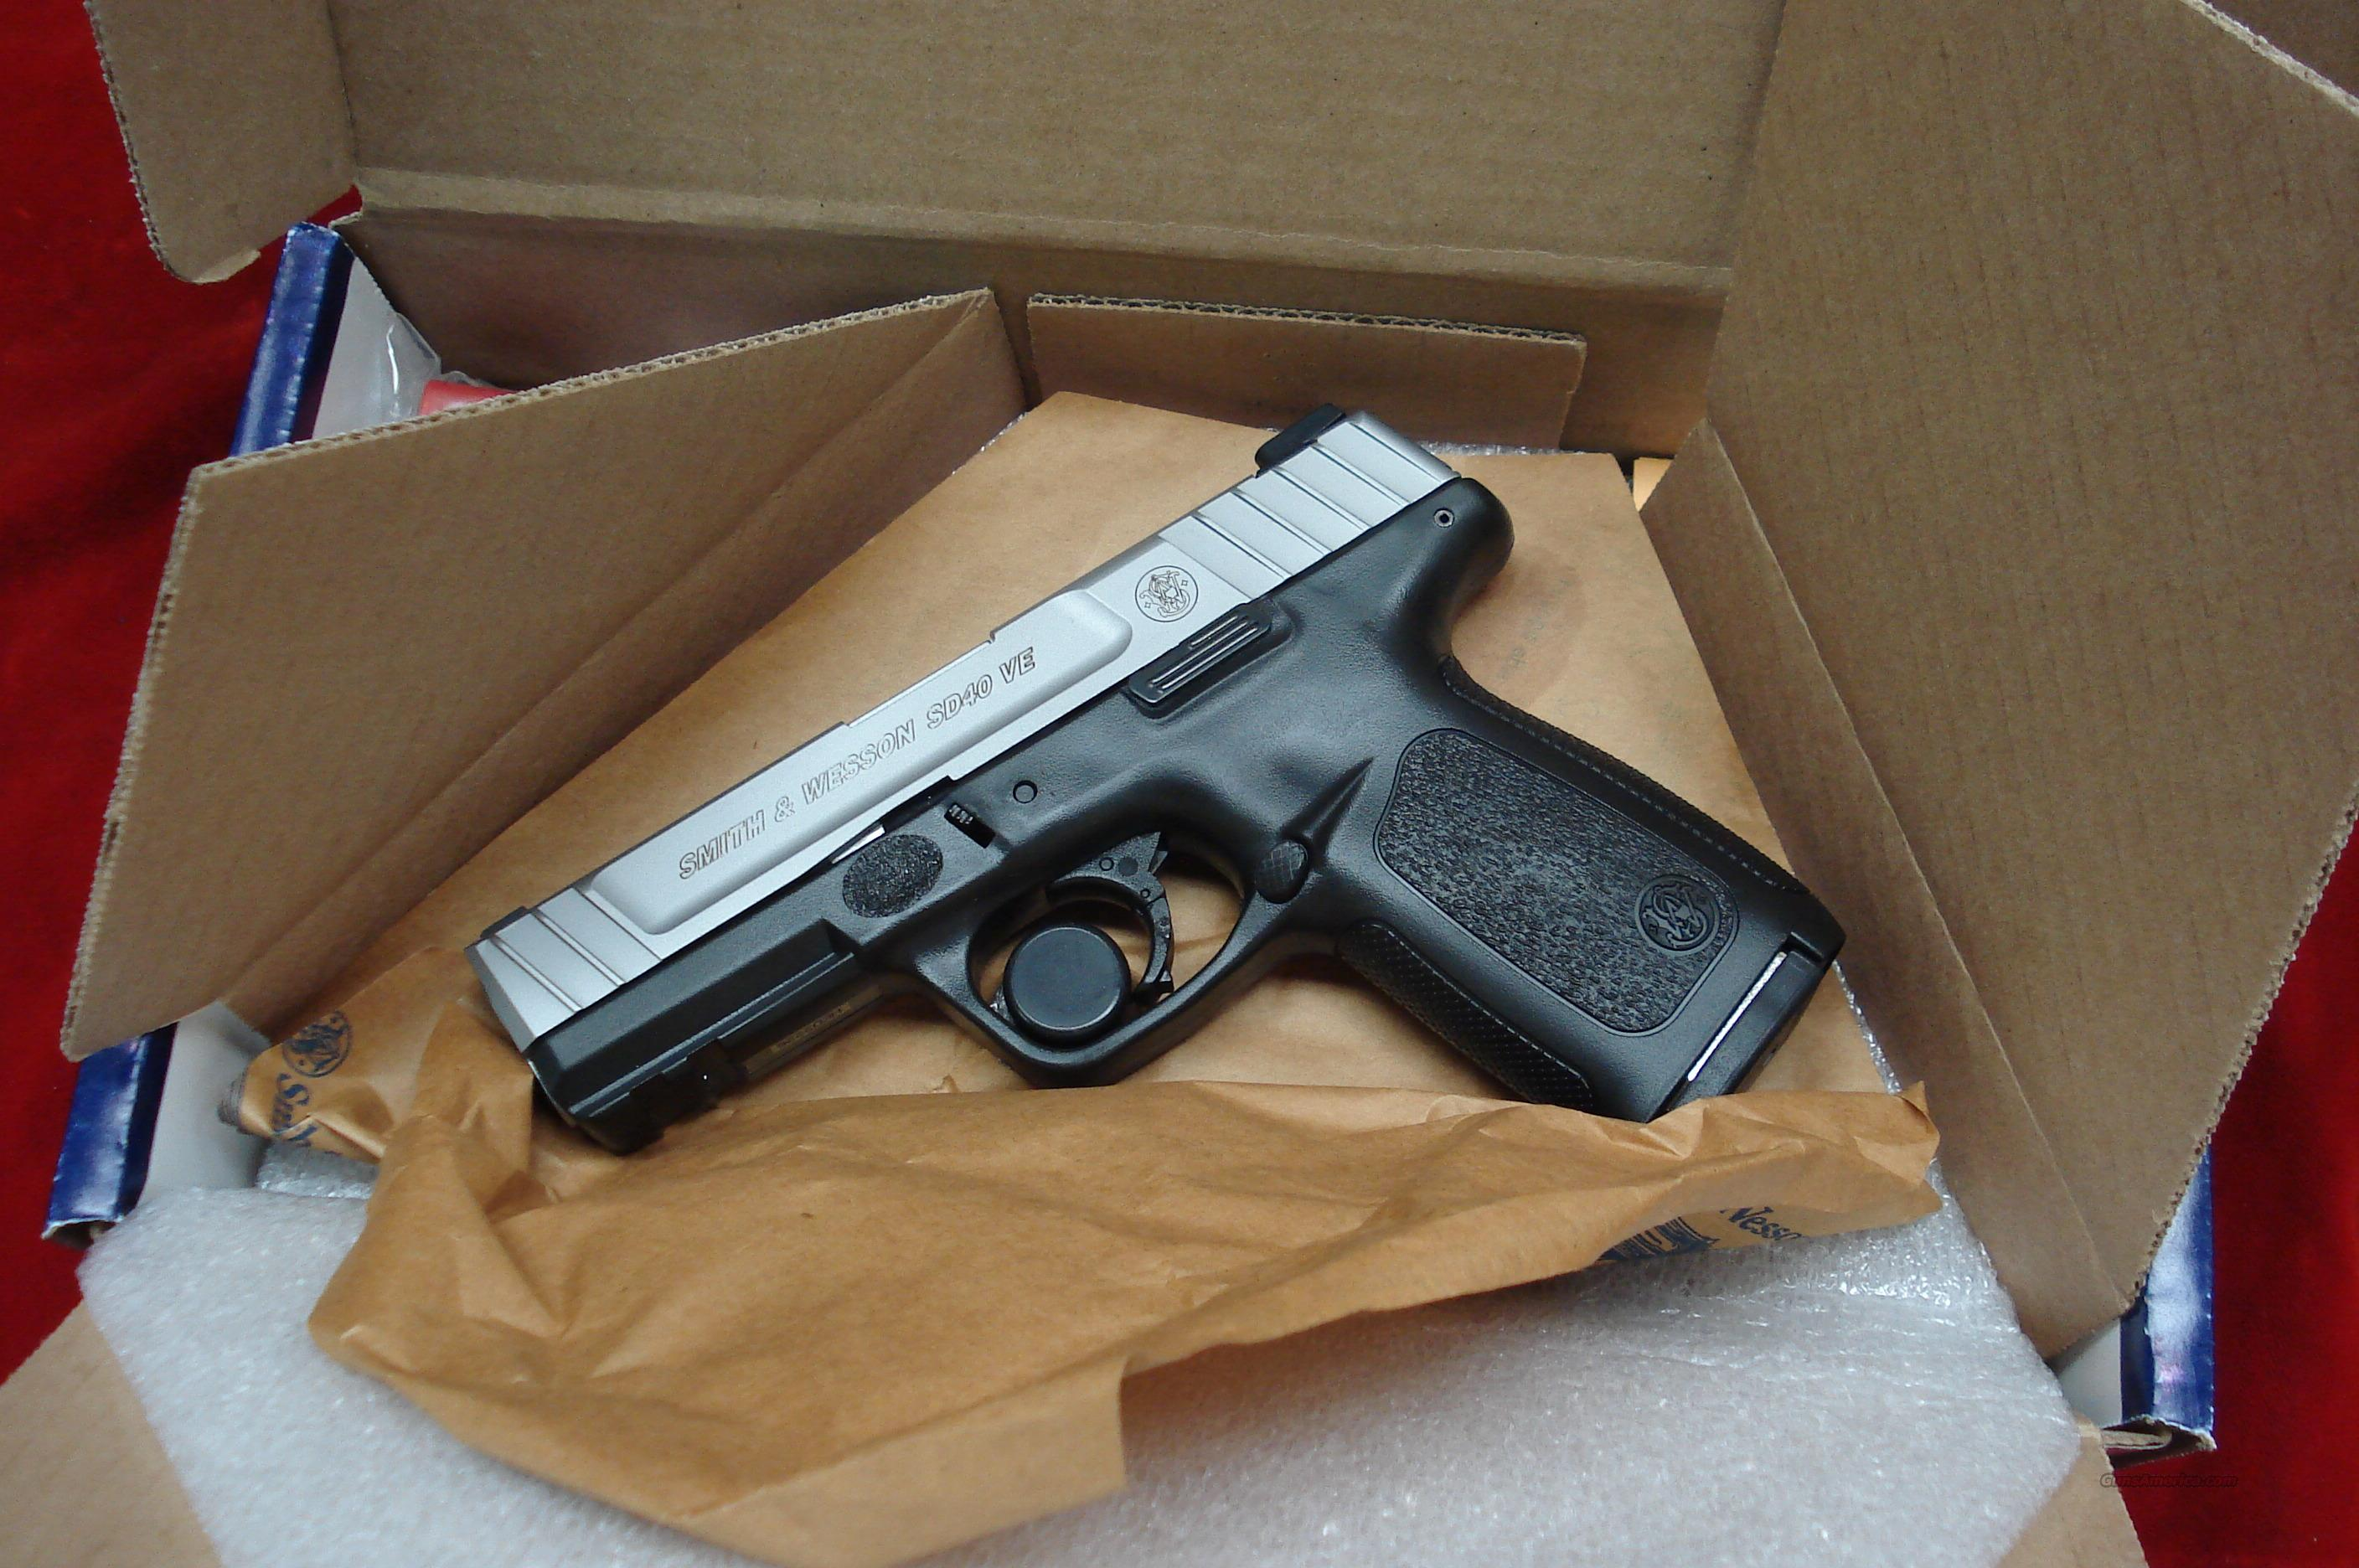 SMITH AND WESSON SD40VE (SELF DEFENSE PISTOL) 40CAL. WITH HIGH CAP. MAGAZINES  NEW  (223400)  Guns > Pistols > Smith & Wesson Pistols - Autos > Polymer Frame